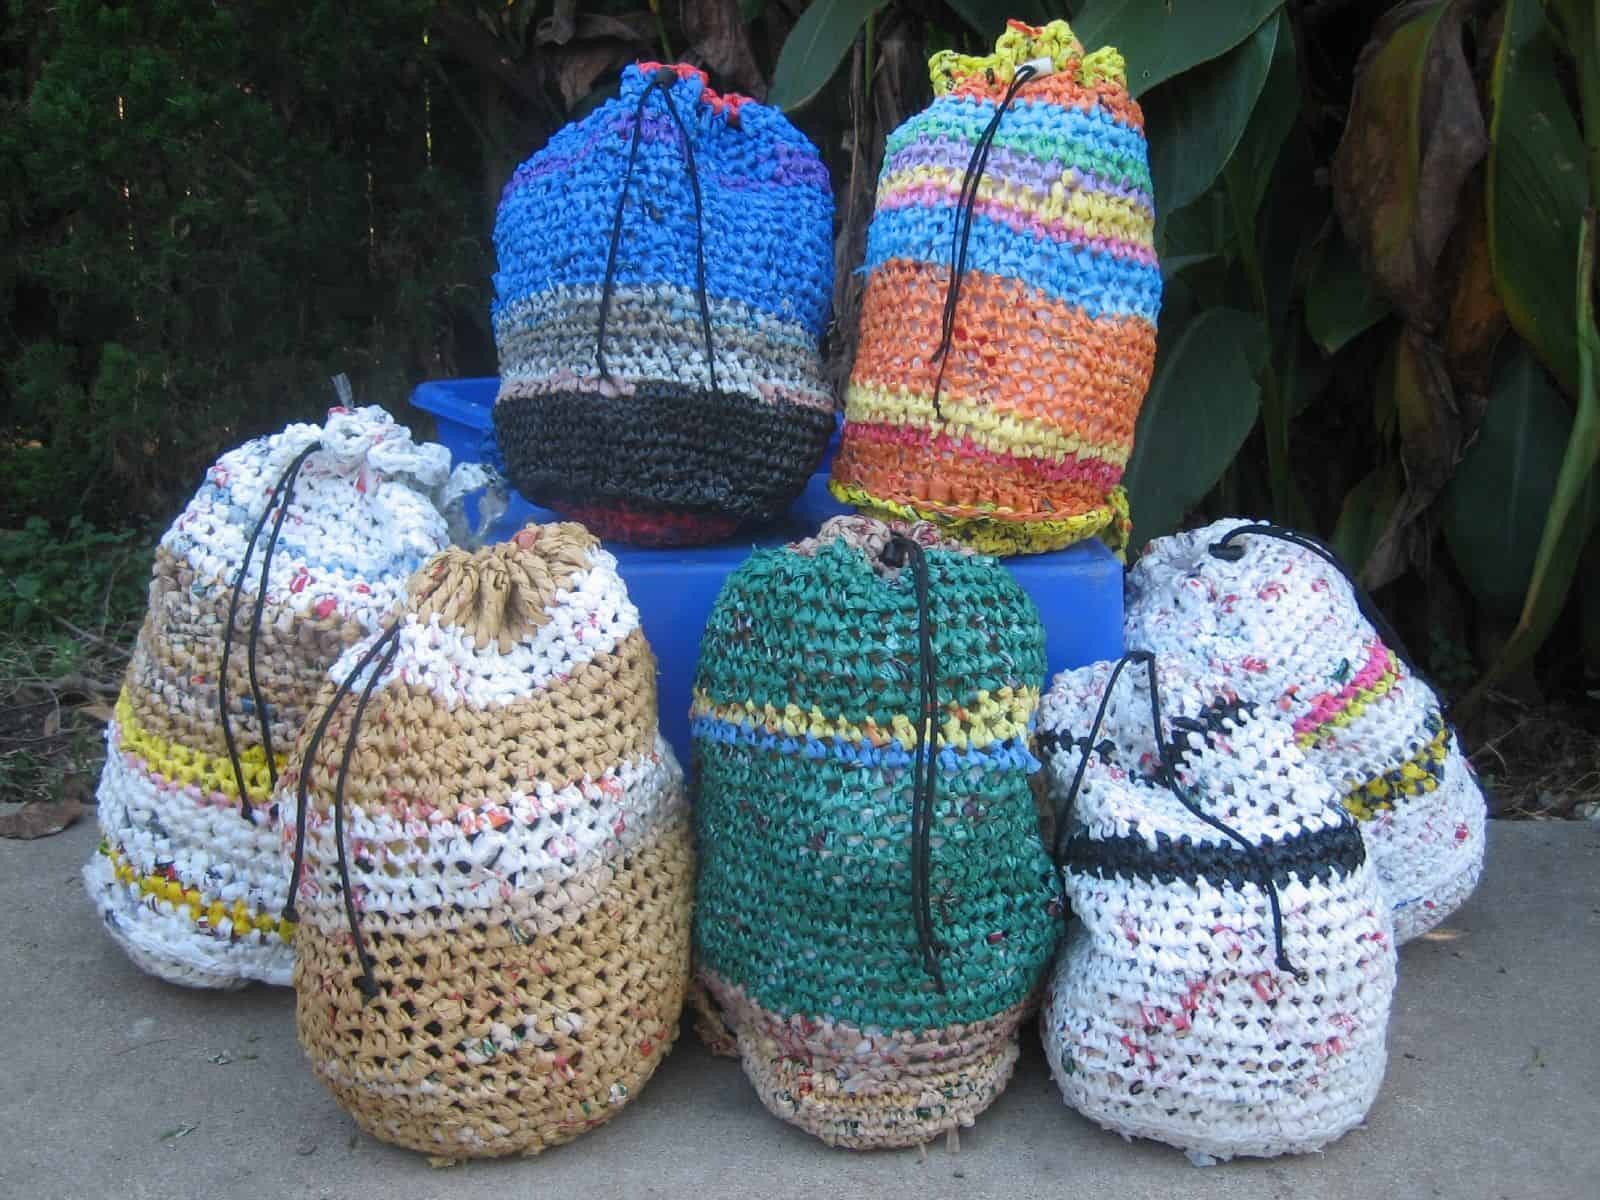 15 Stunning Plastic Bag Crochet Projects